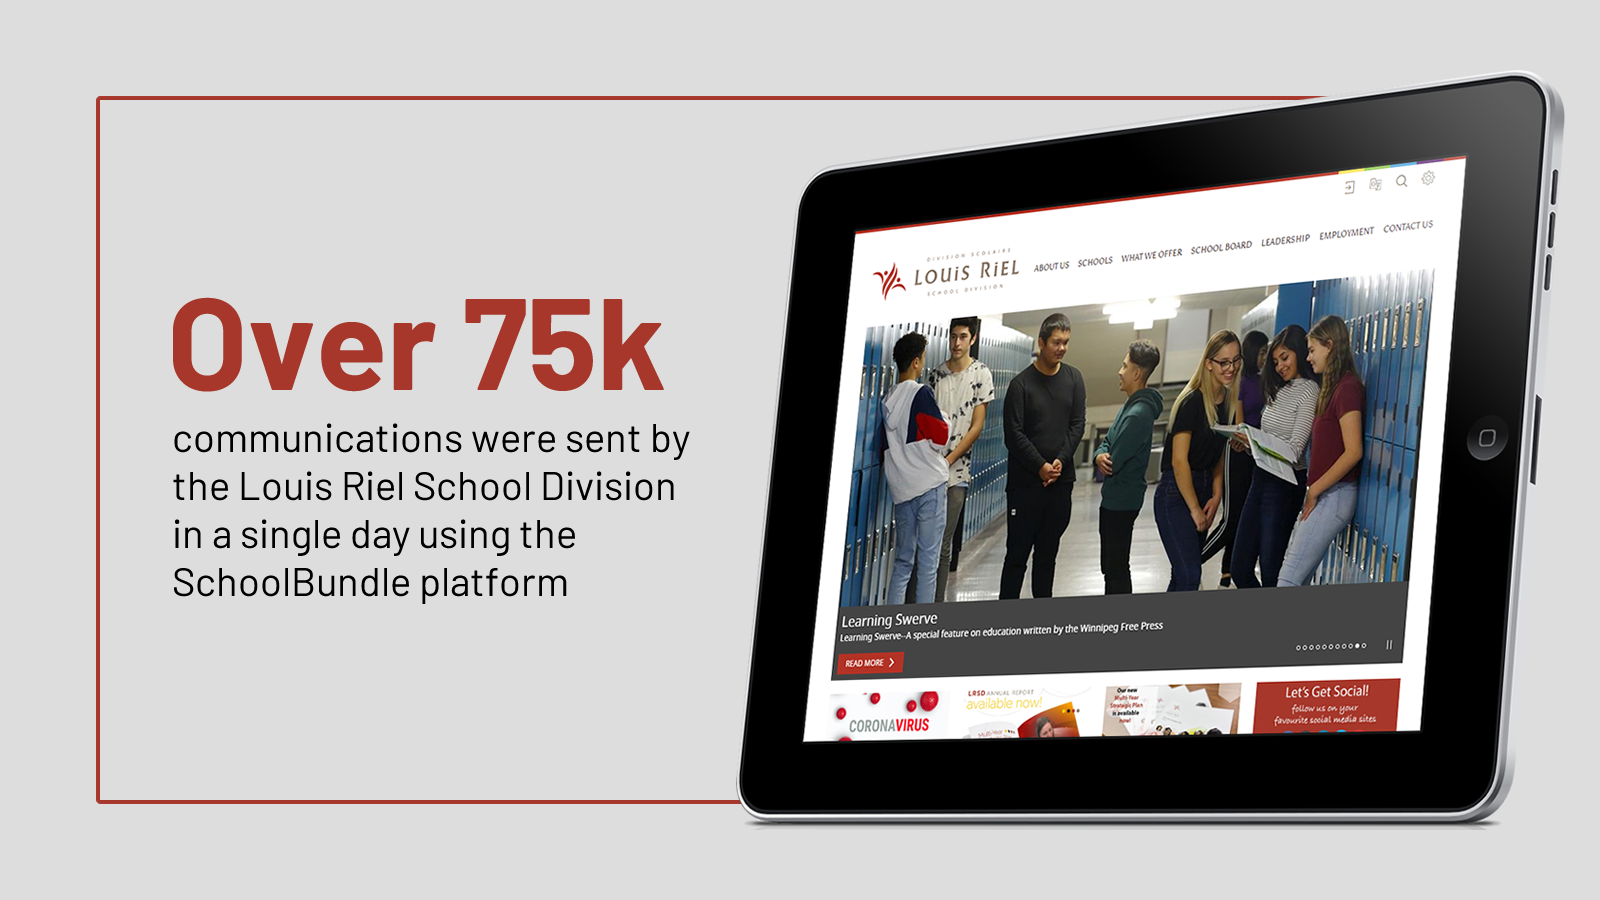 Over 75k communications were sent by the LRSD in a single day using the SchoolBundle platform